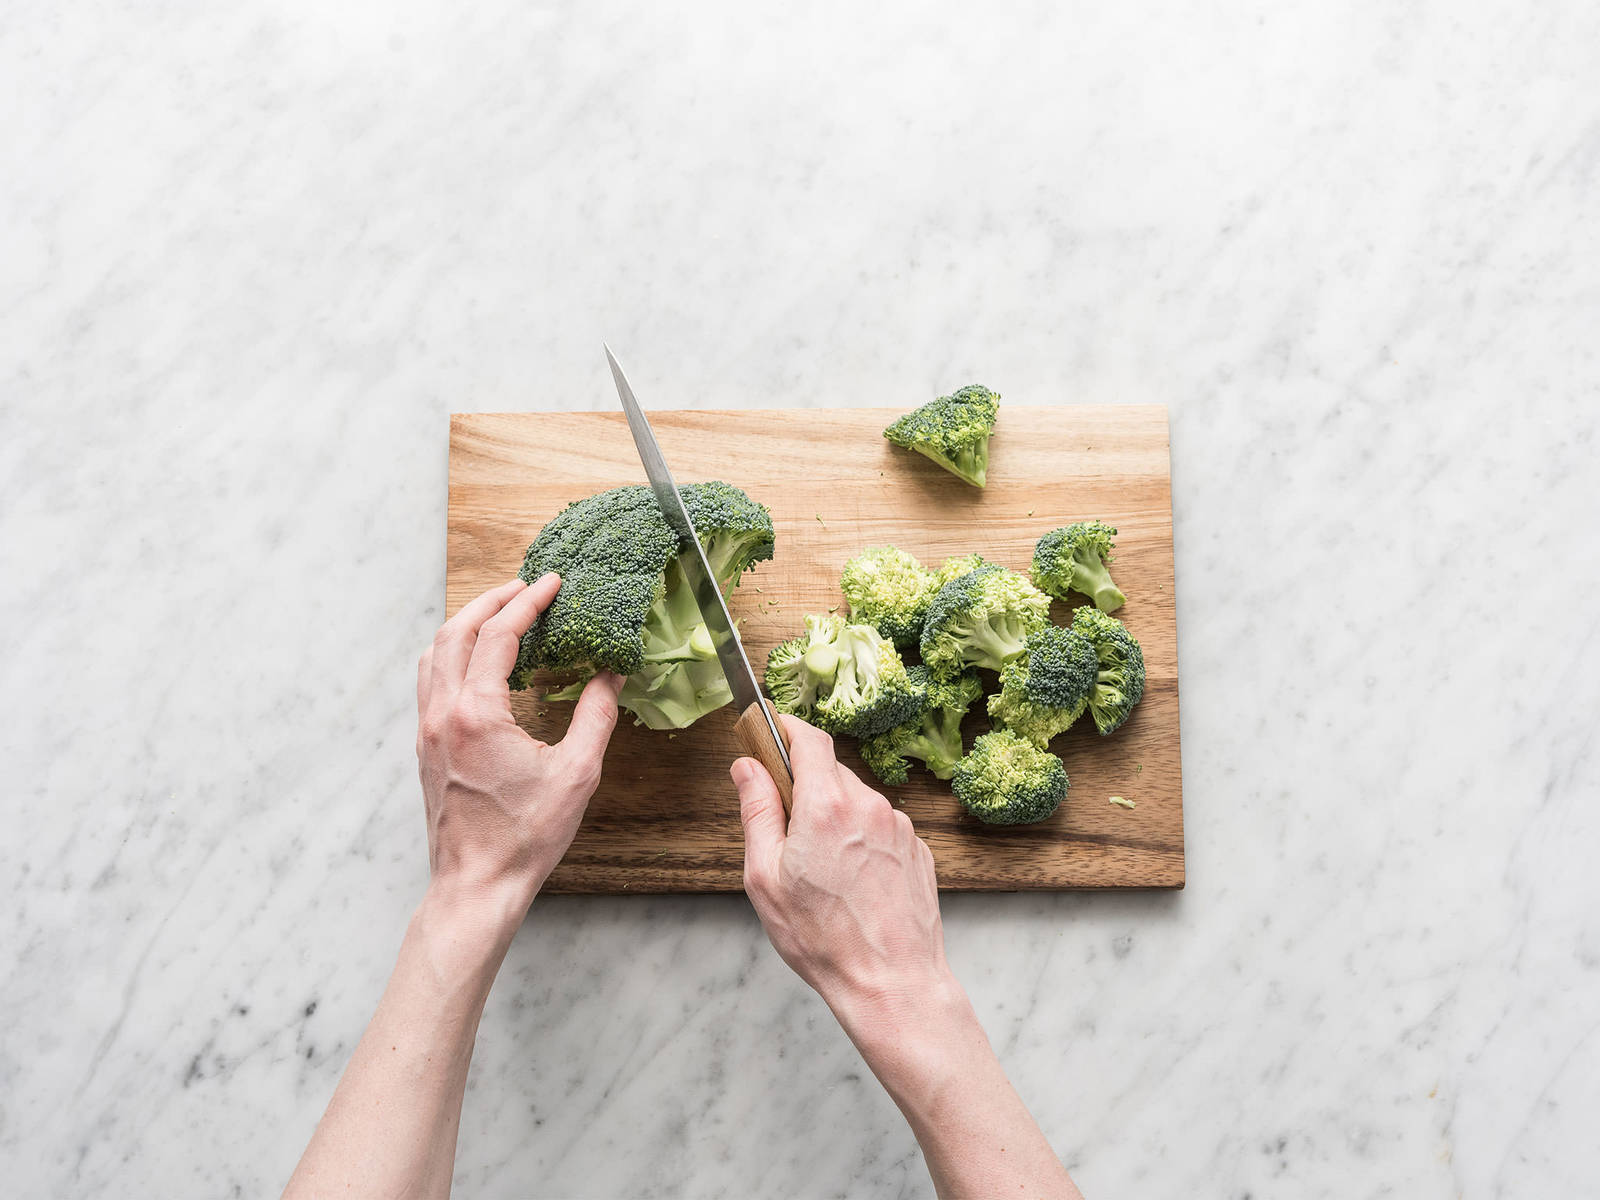 Cut broccoli into bite-sized florets. Then, fill a large saucepan half full with salted water, bring to a boil, and blanch broccoli for approx. 2 – 3 min. Drain and set aside.